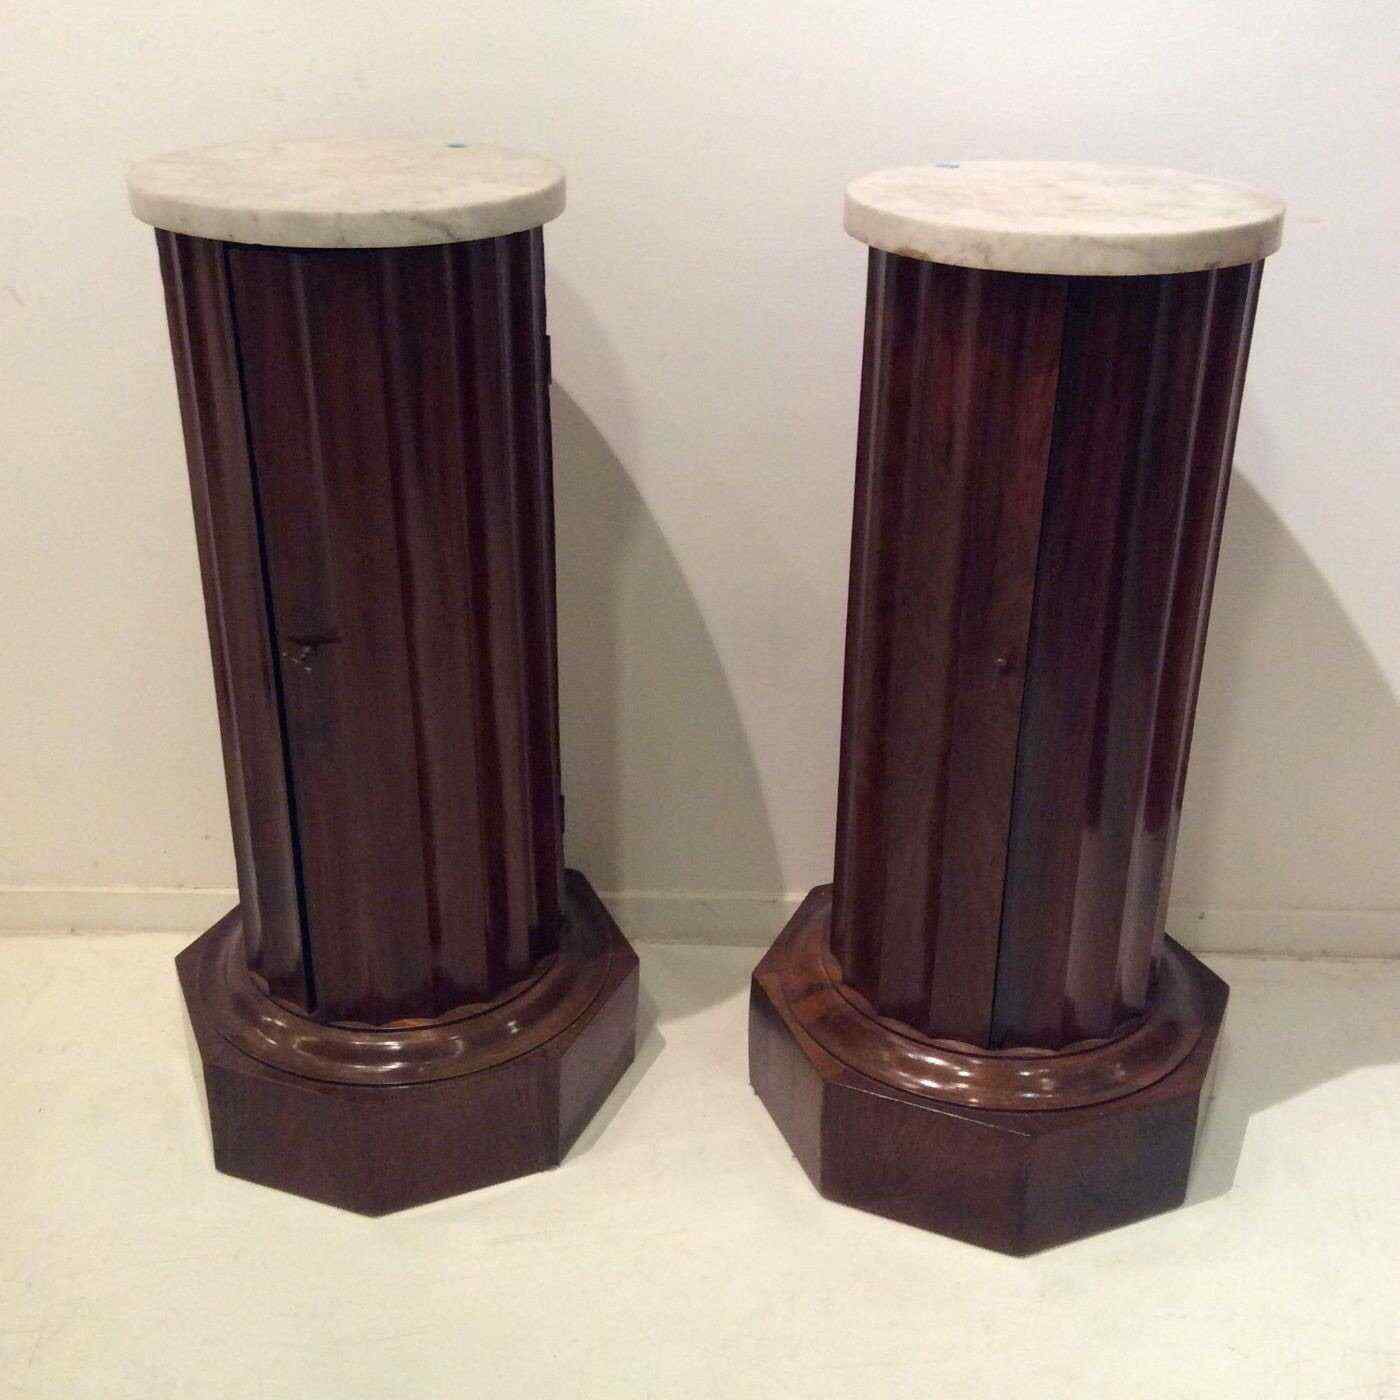 Beautiful pair of columns in walnut veneered